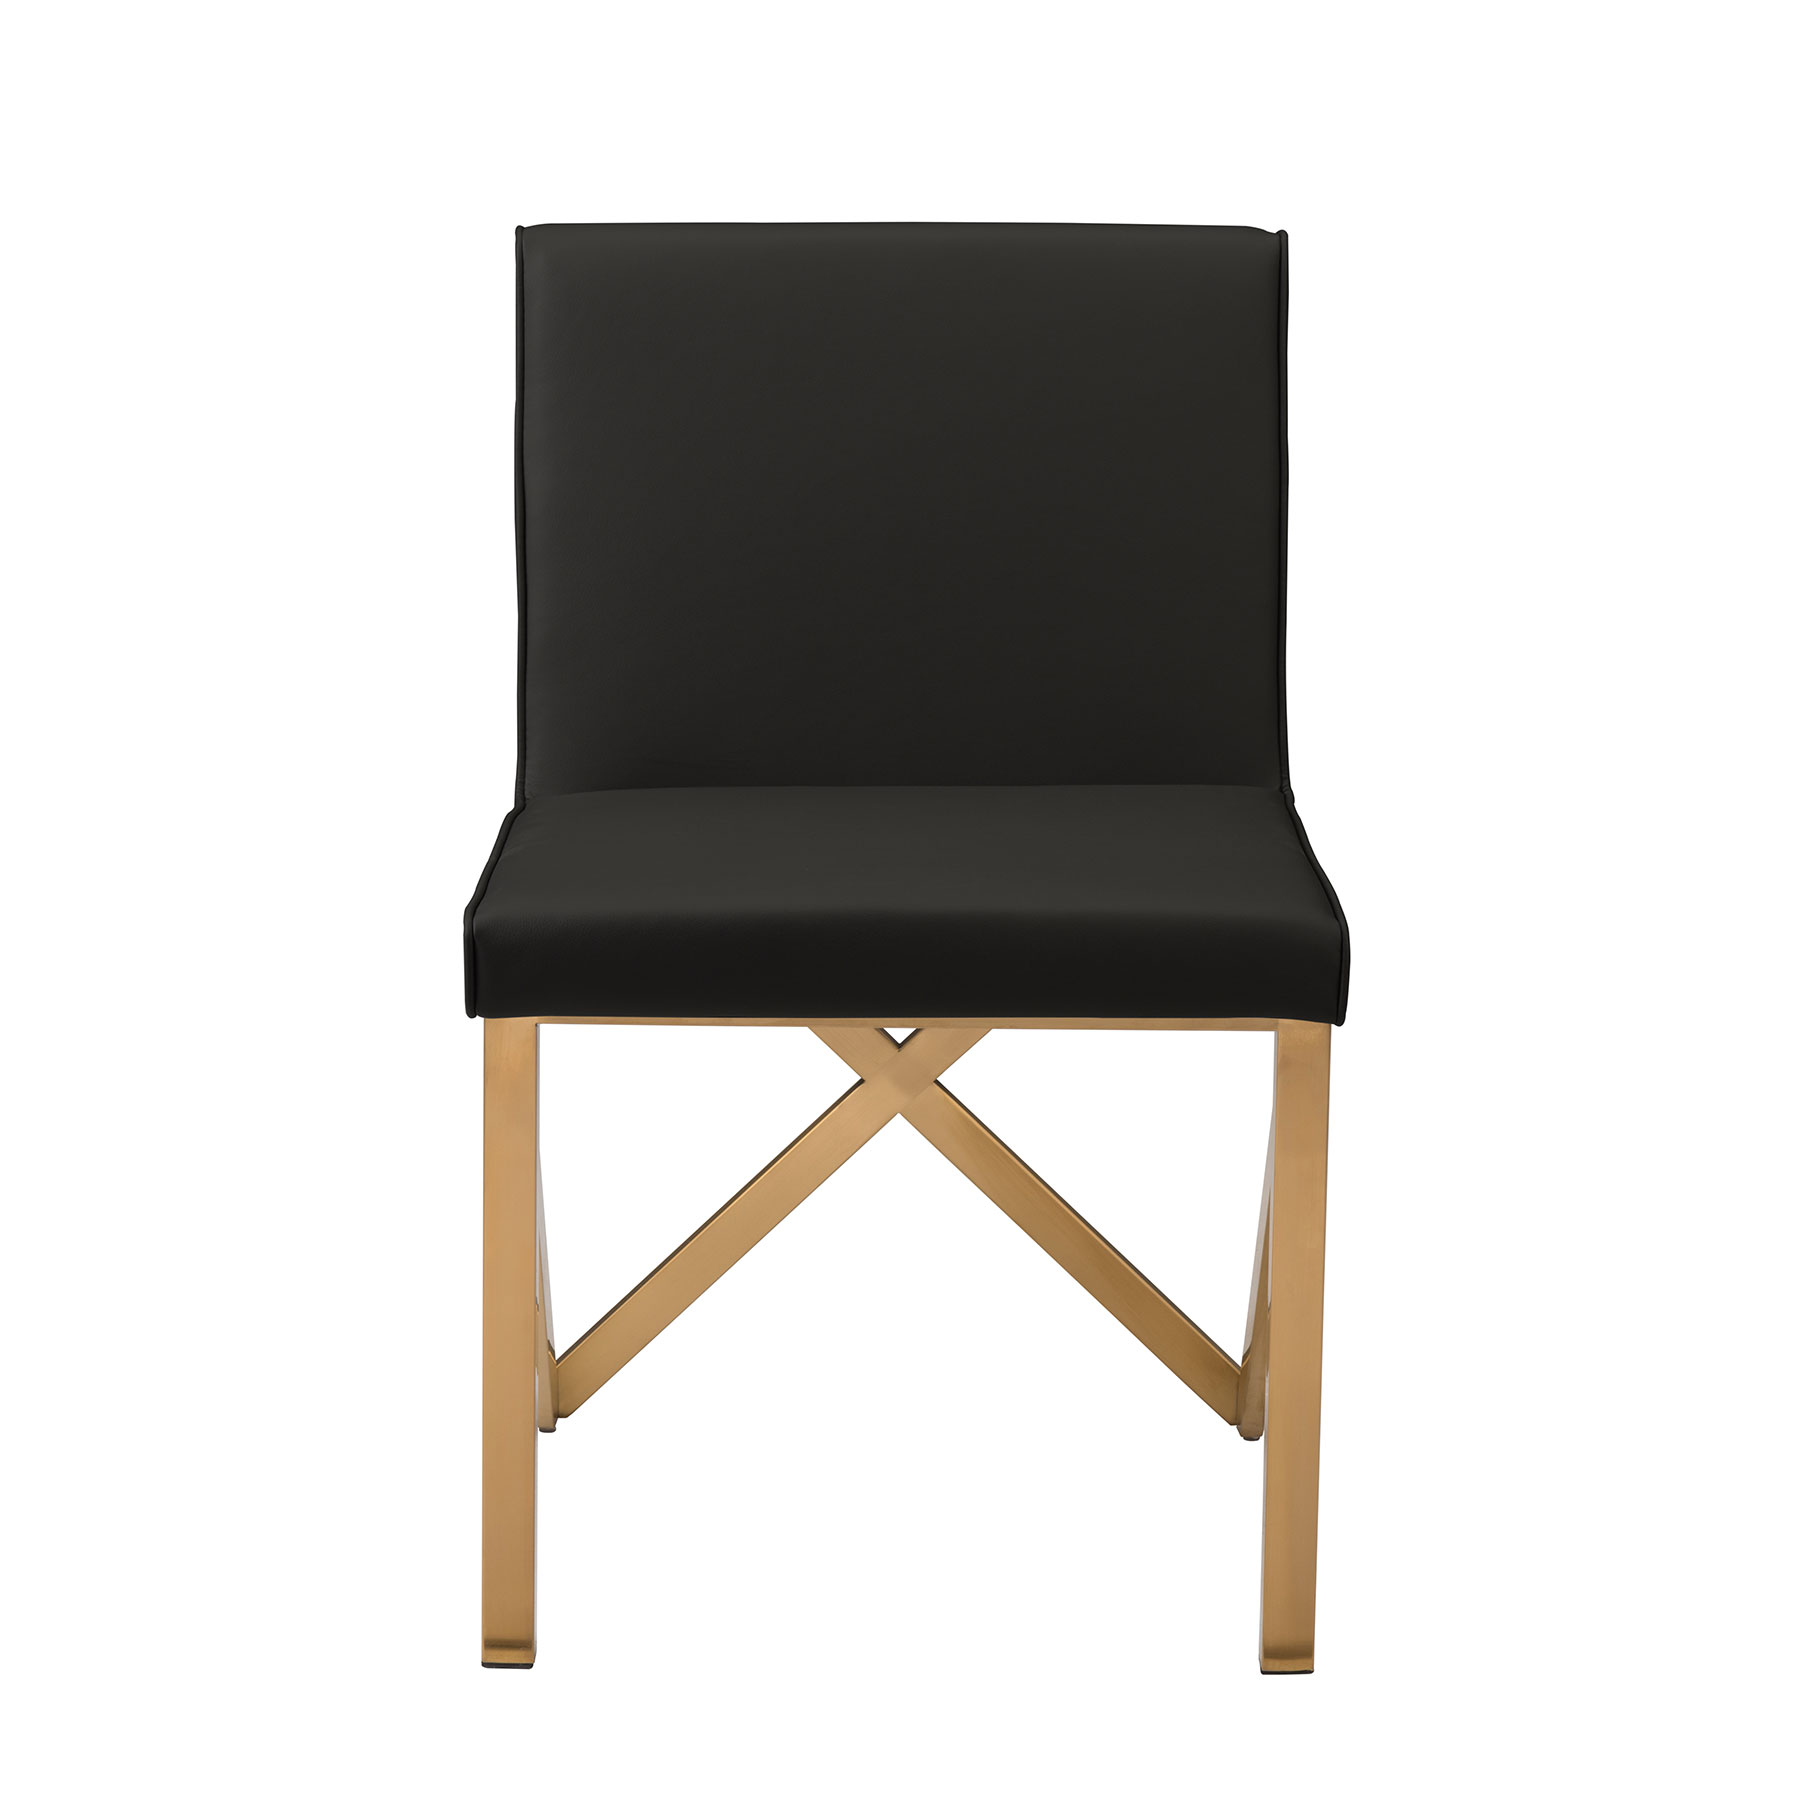 Talbot Dining Chair   Black / Gold   Contemporary | Nuevo HGTB522